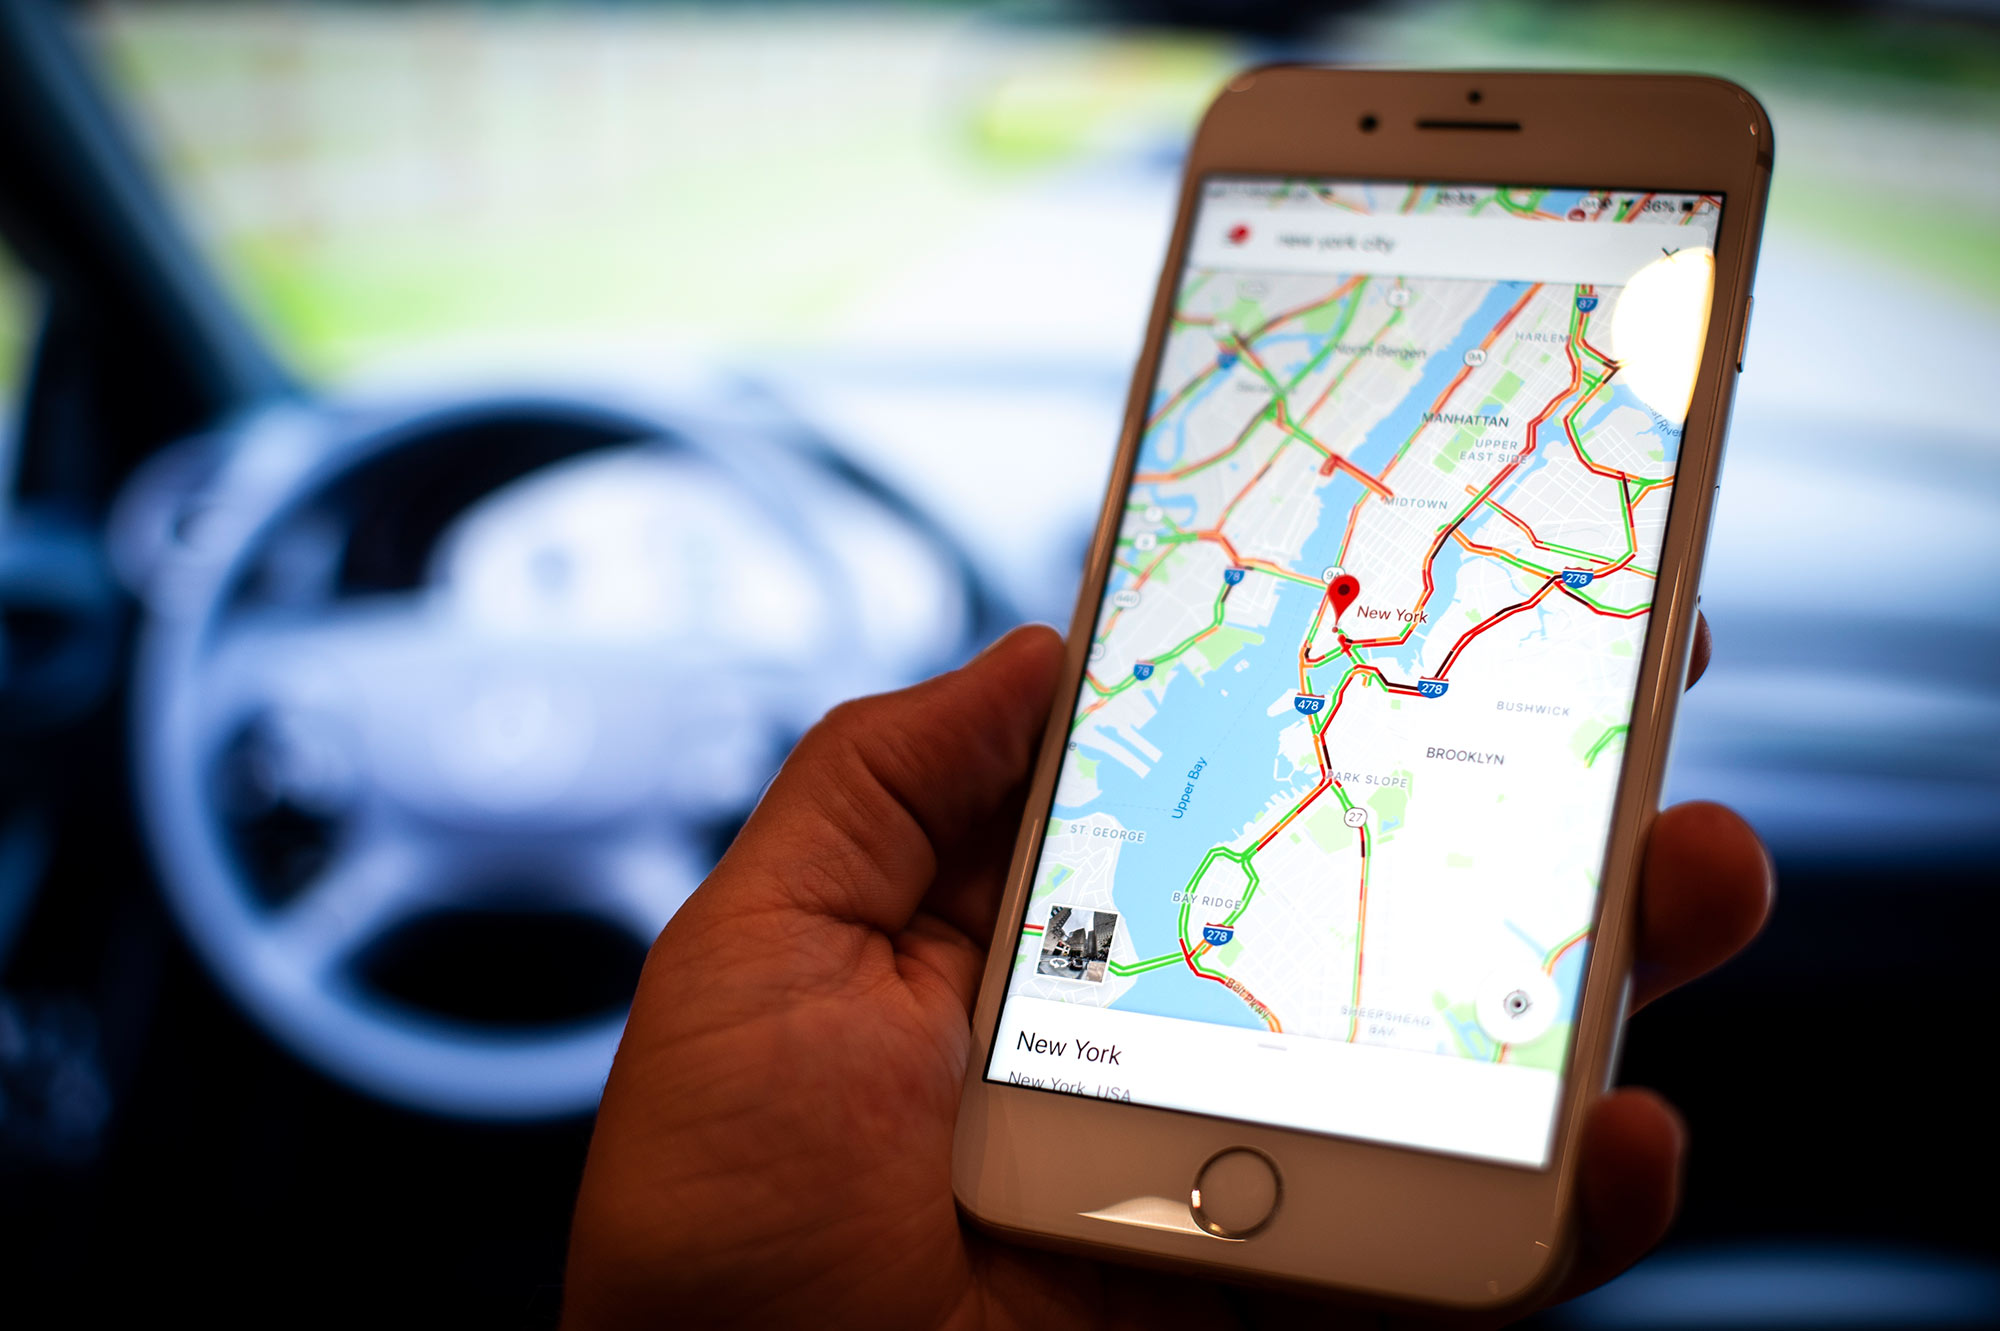 A mobile phone with the Google Maps application